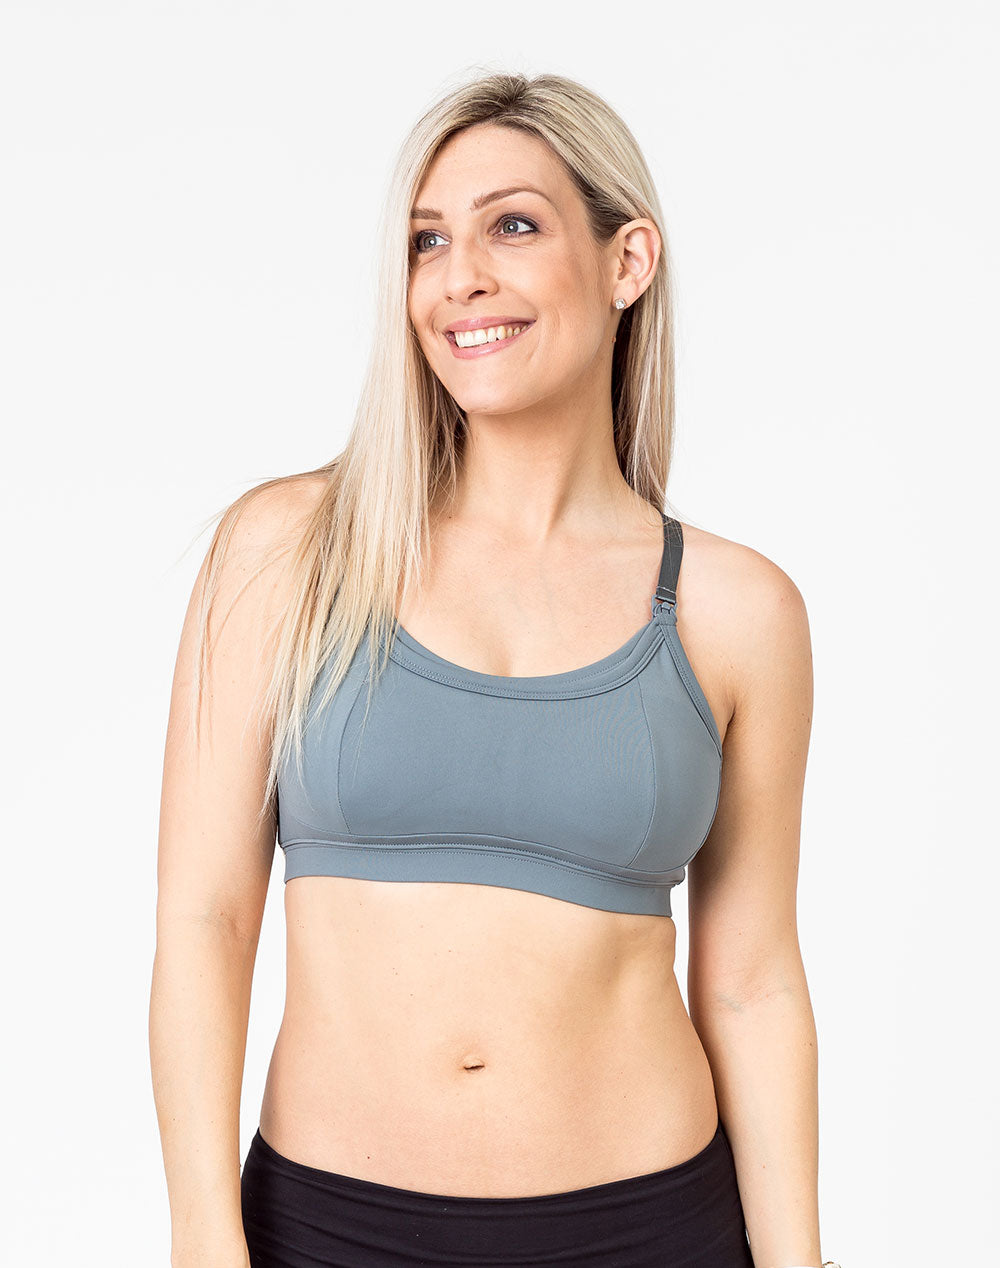 Racerback Nursing Bra - Everyday Bra Grey